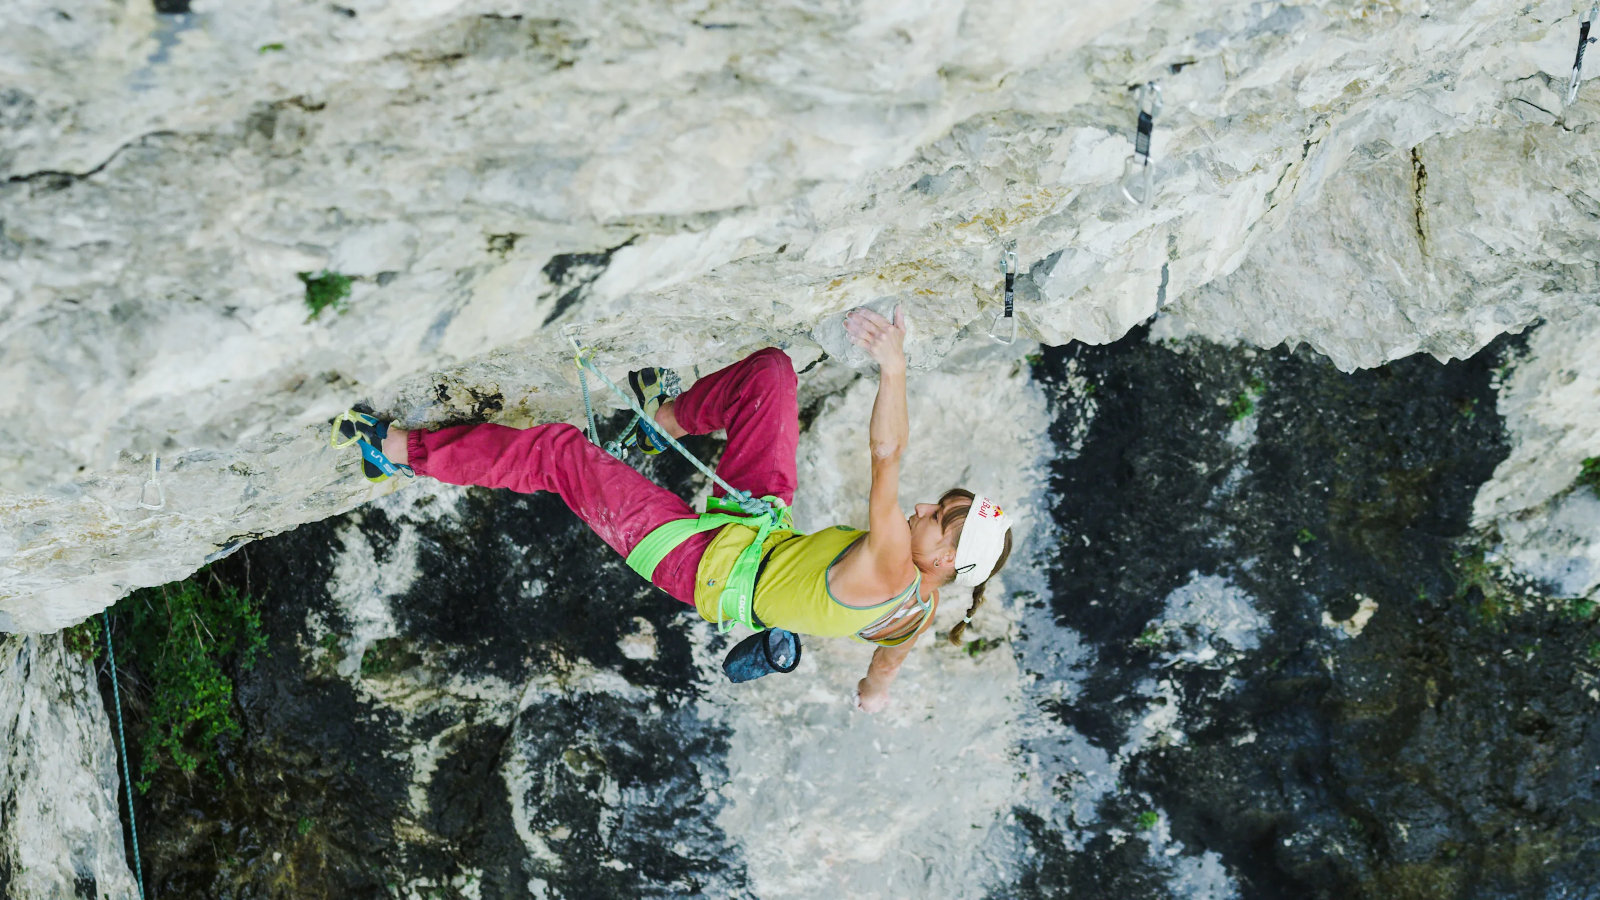 Angy Eiter in 'Madame Ching' (9b) (c) Raphael Pöham/ASP Red Bull/Red Bull Content Pool